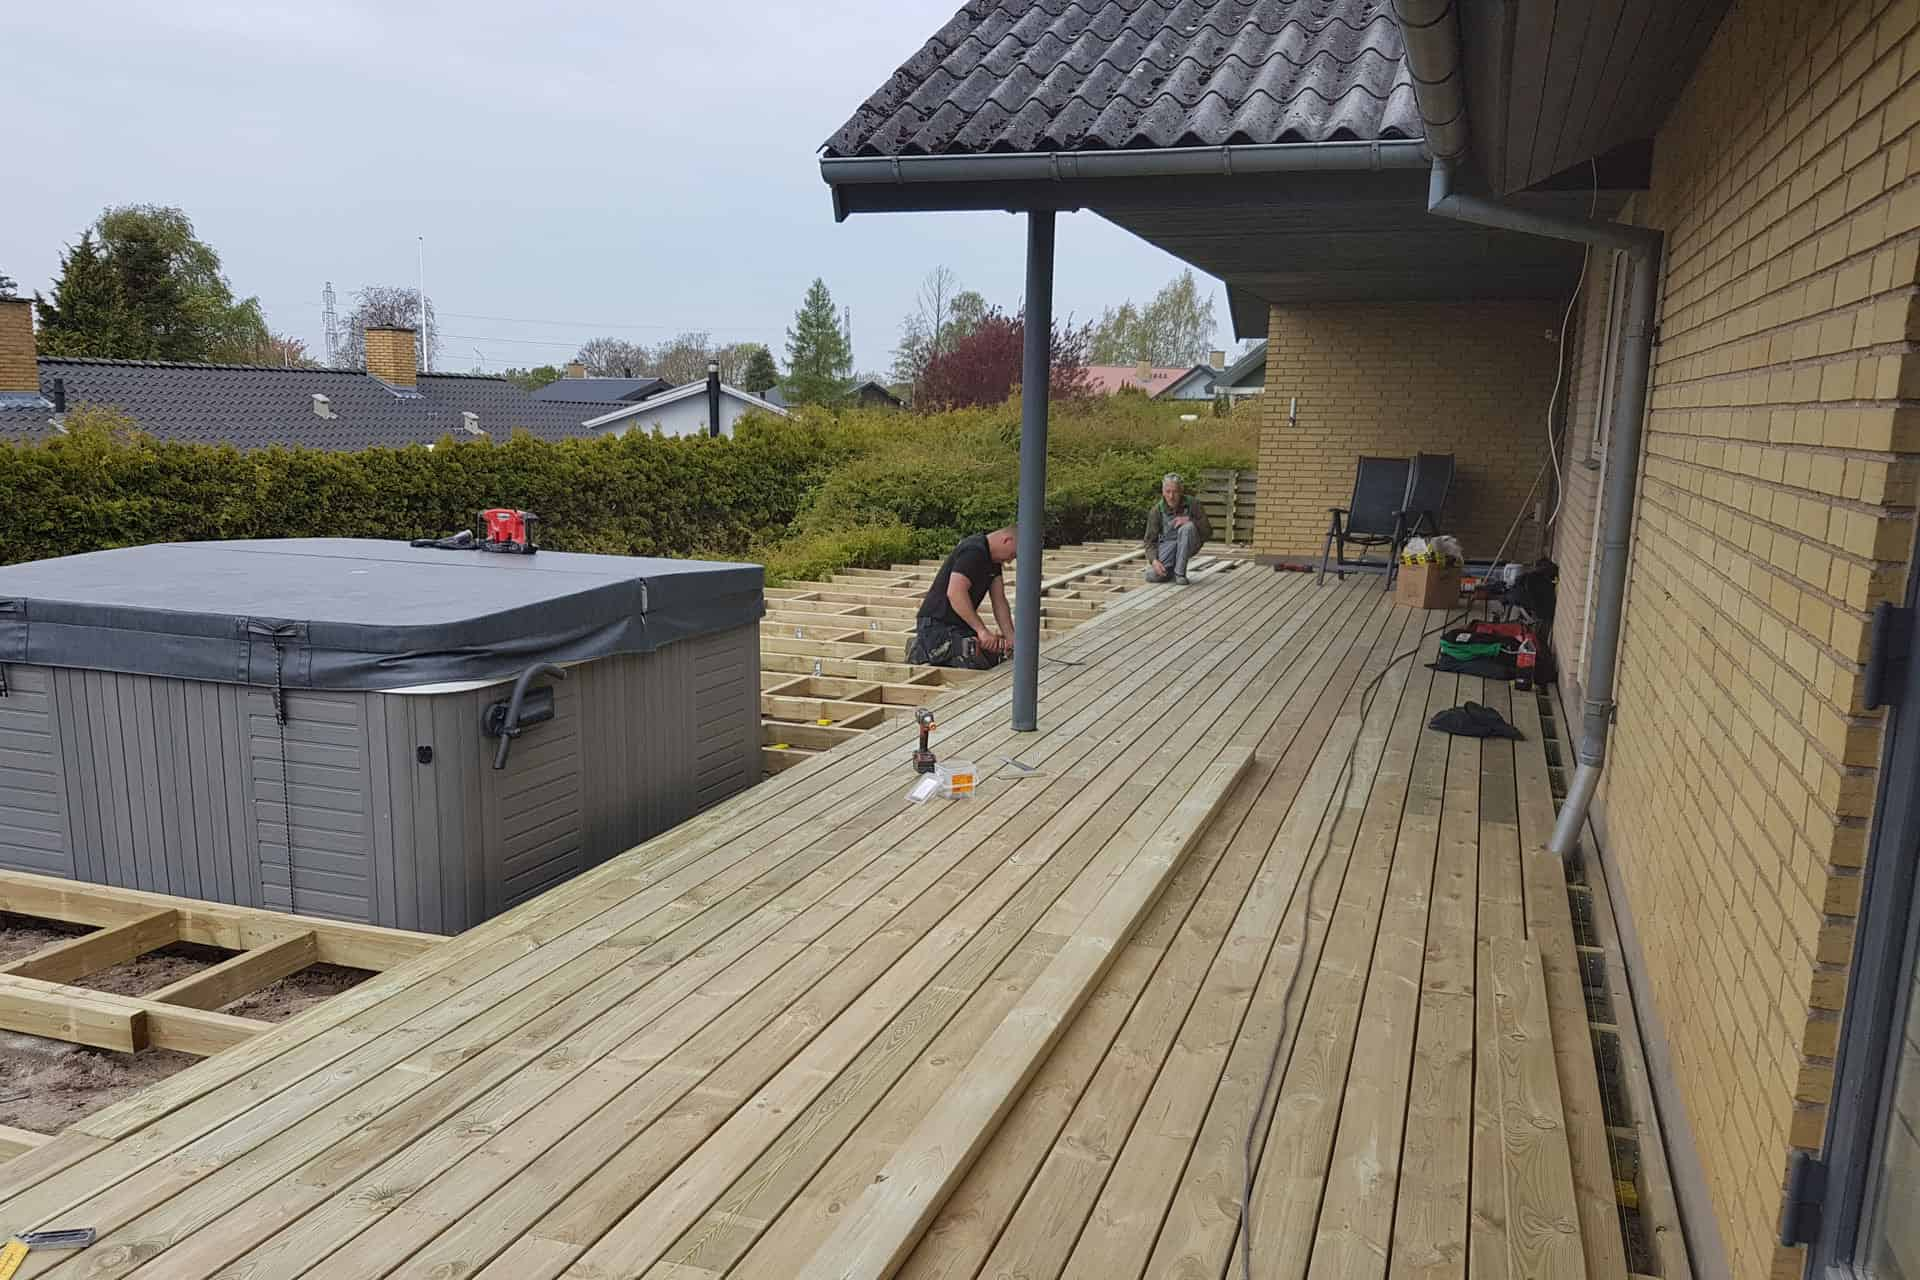 How to build a deck - treated pine decking